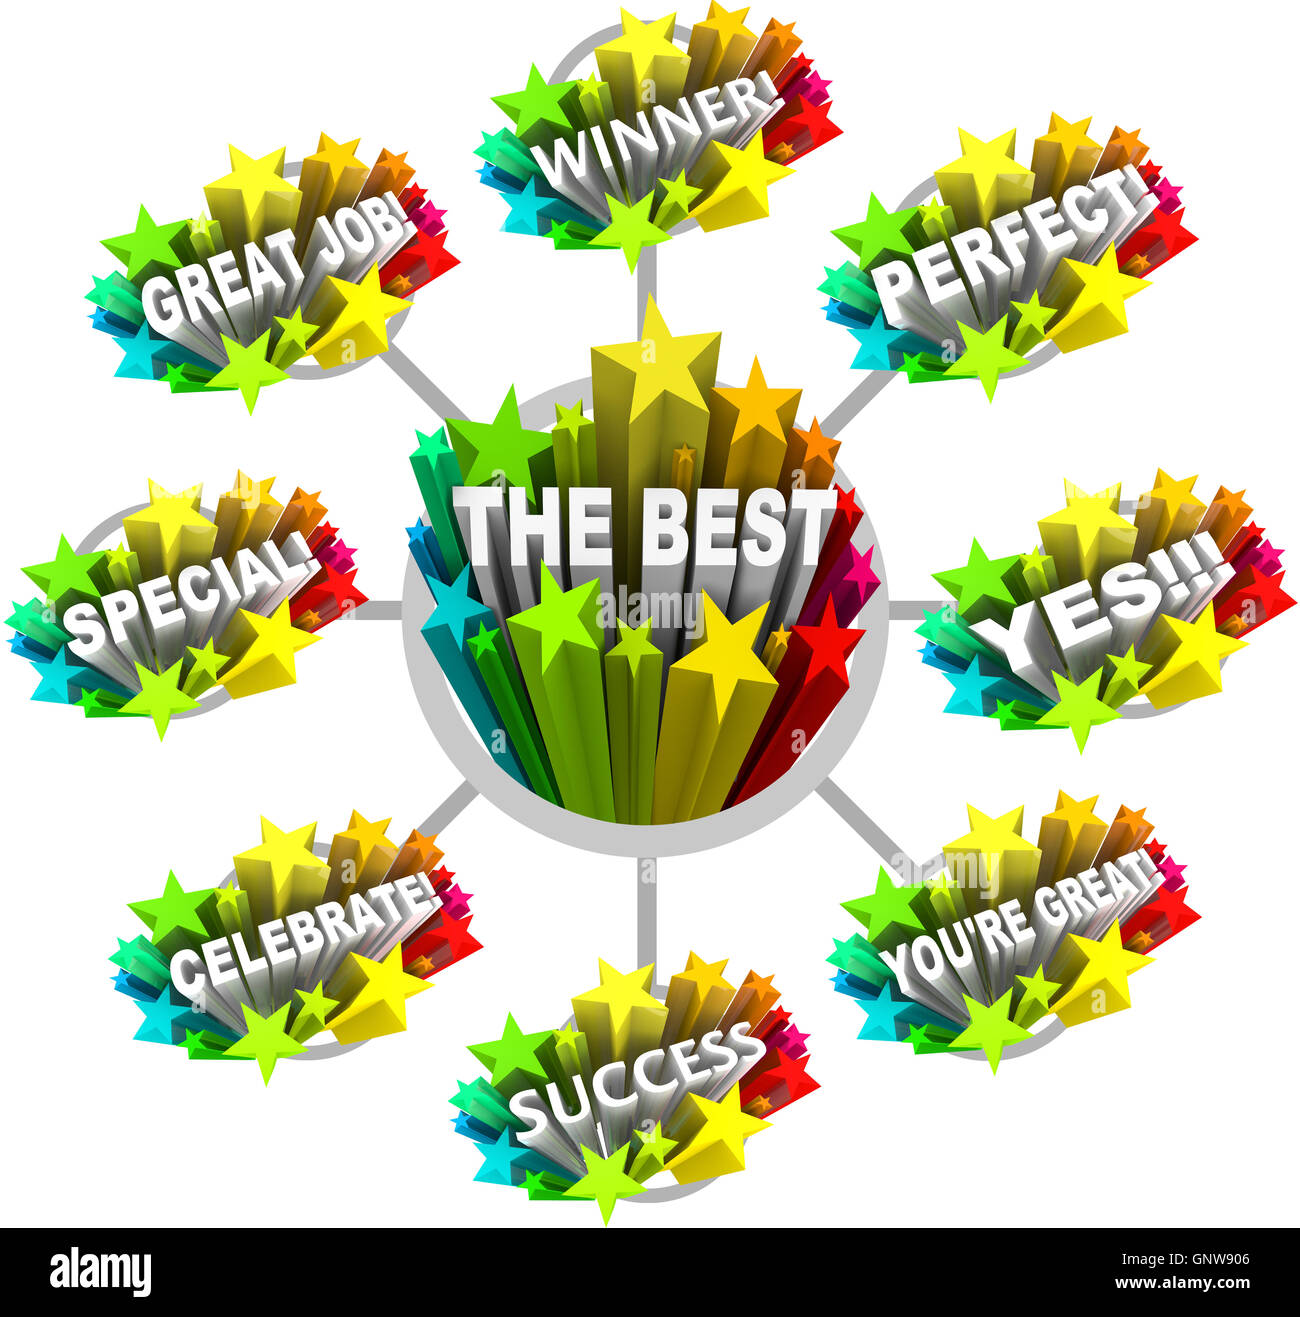 praise and appreciation words for a great job stock photo 116725846